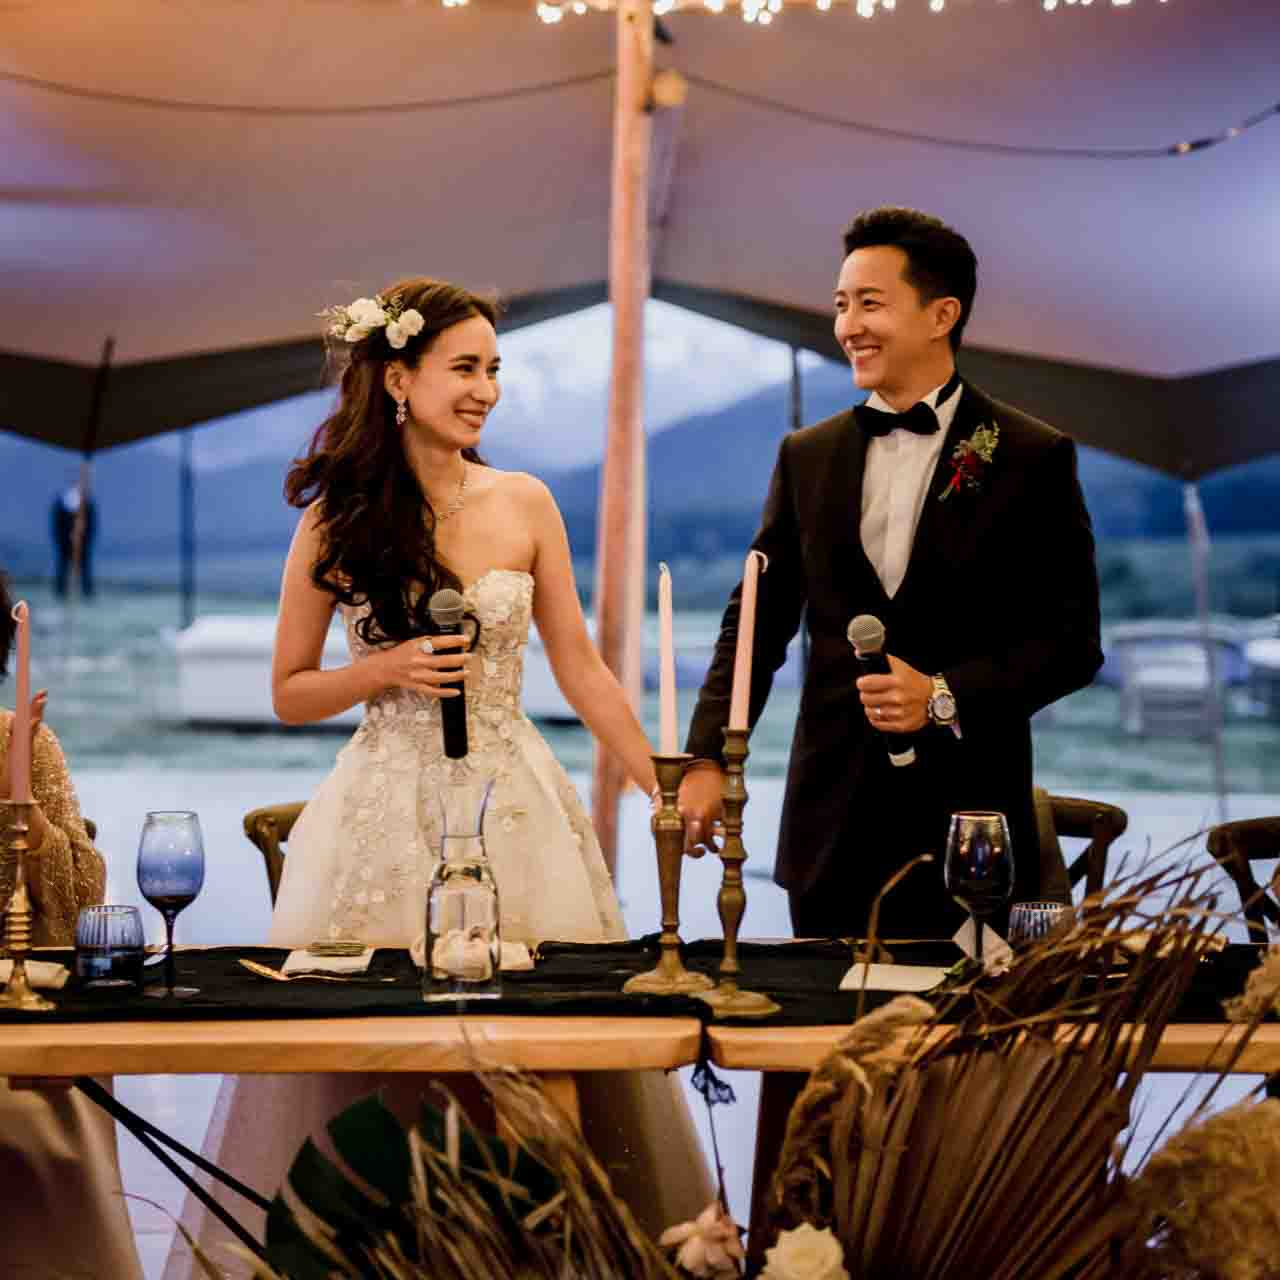 Ex Super Junior Popstar, Han Geng & Arrow Actress, Celina Jade's Stunning & Super Romantic Wedding [Hobbit Movie Set, New Zealand]